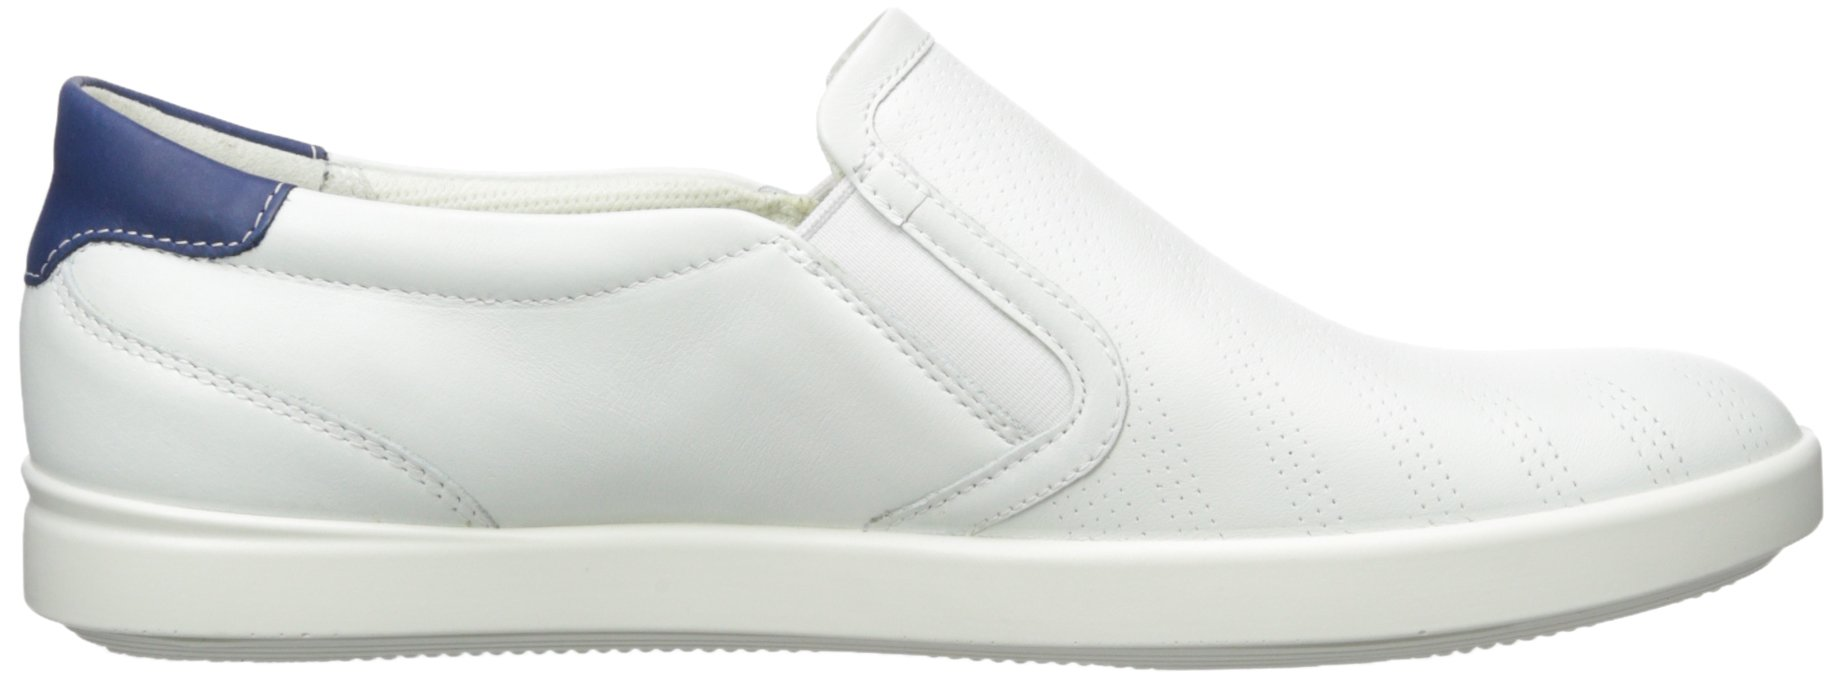 Details about ECCO Women's Aimee Sport Slip on Fashion Sneaker, Choose SZcolor